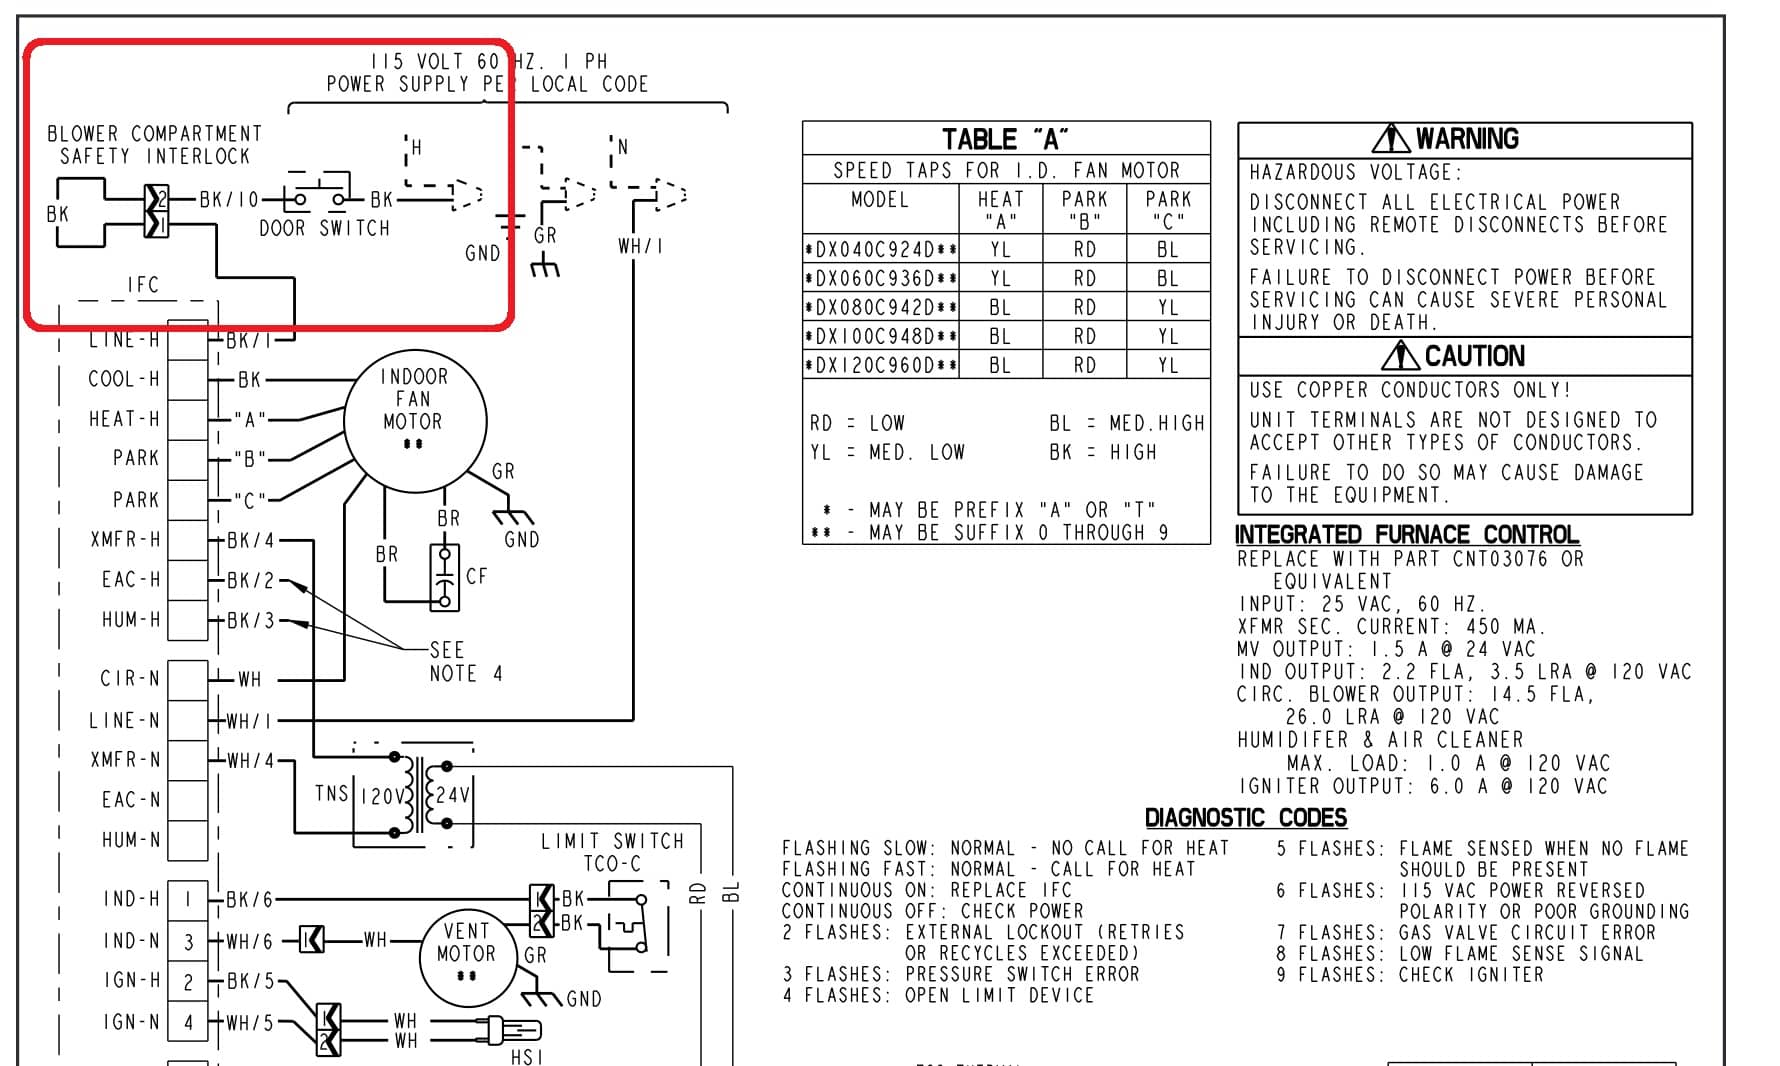 Trane_Furnace_Wiring_PARTIAL_023 blower door safety interlock switch installation, wiring, repair carrier furnace wiring diagram at crackthecode.co